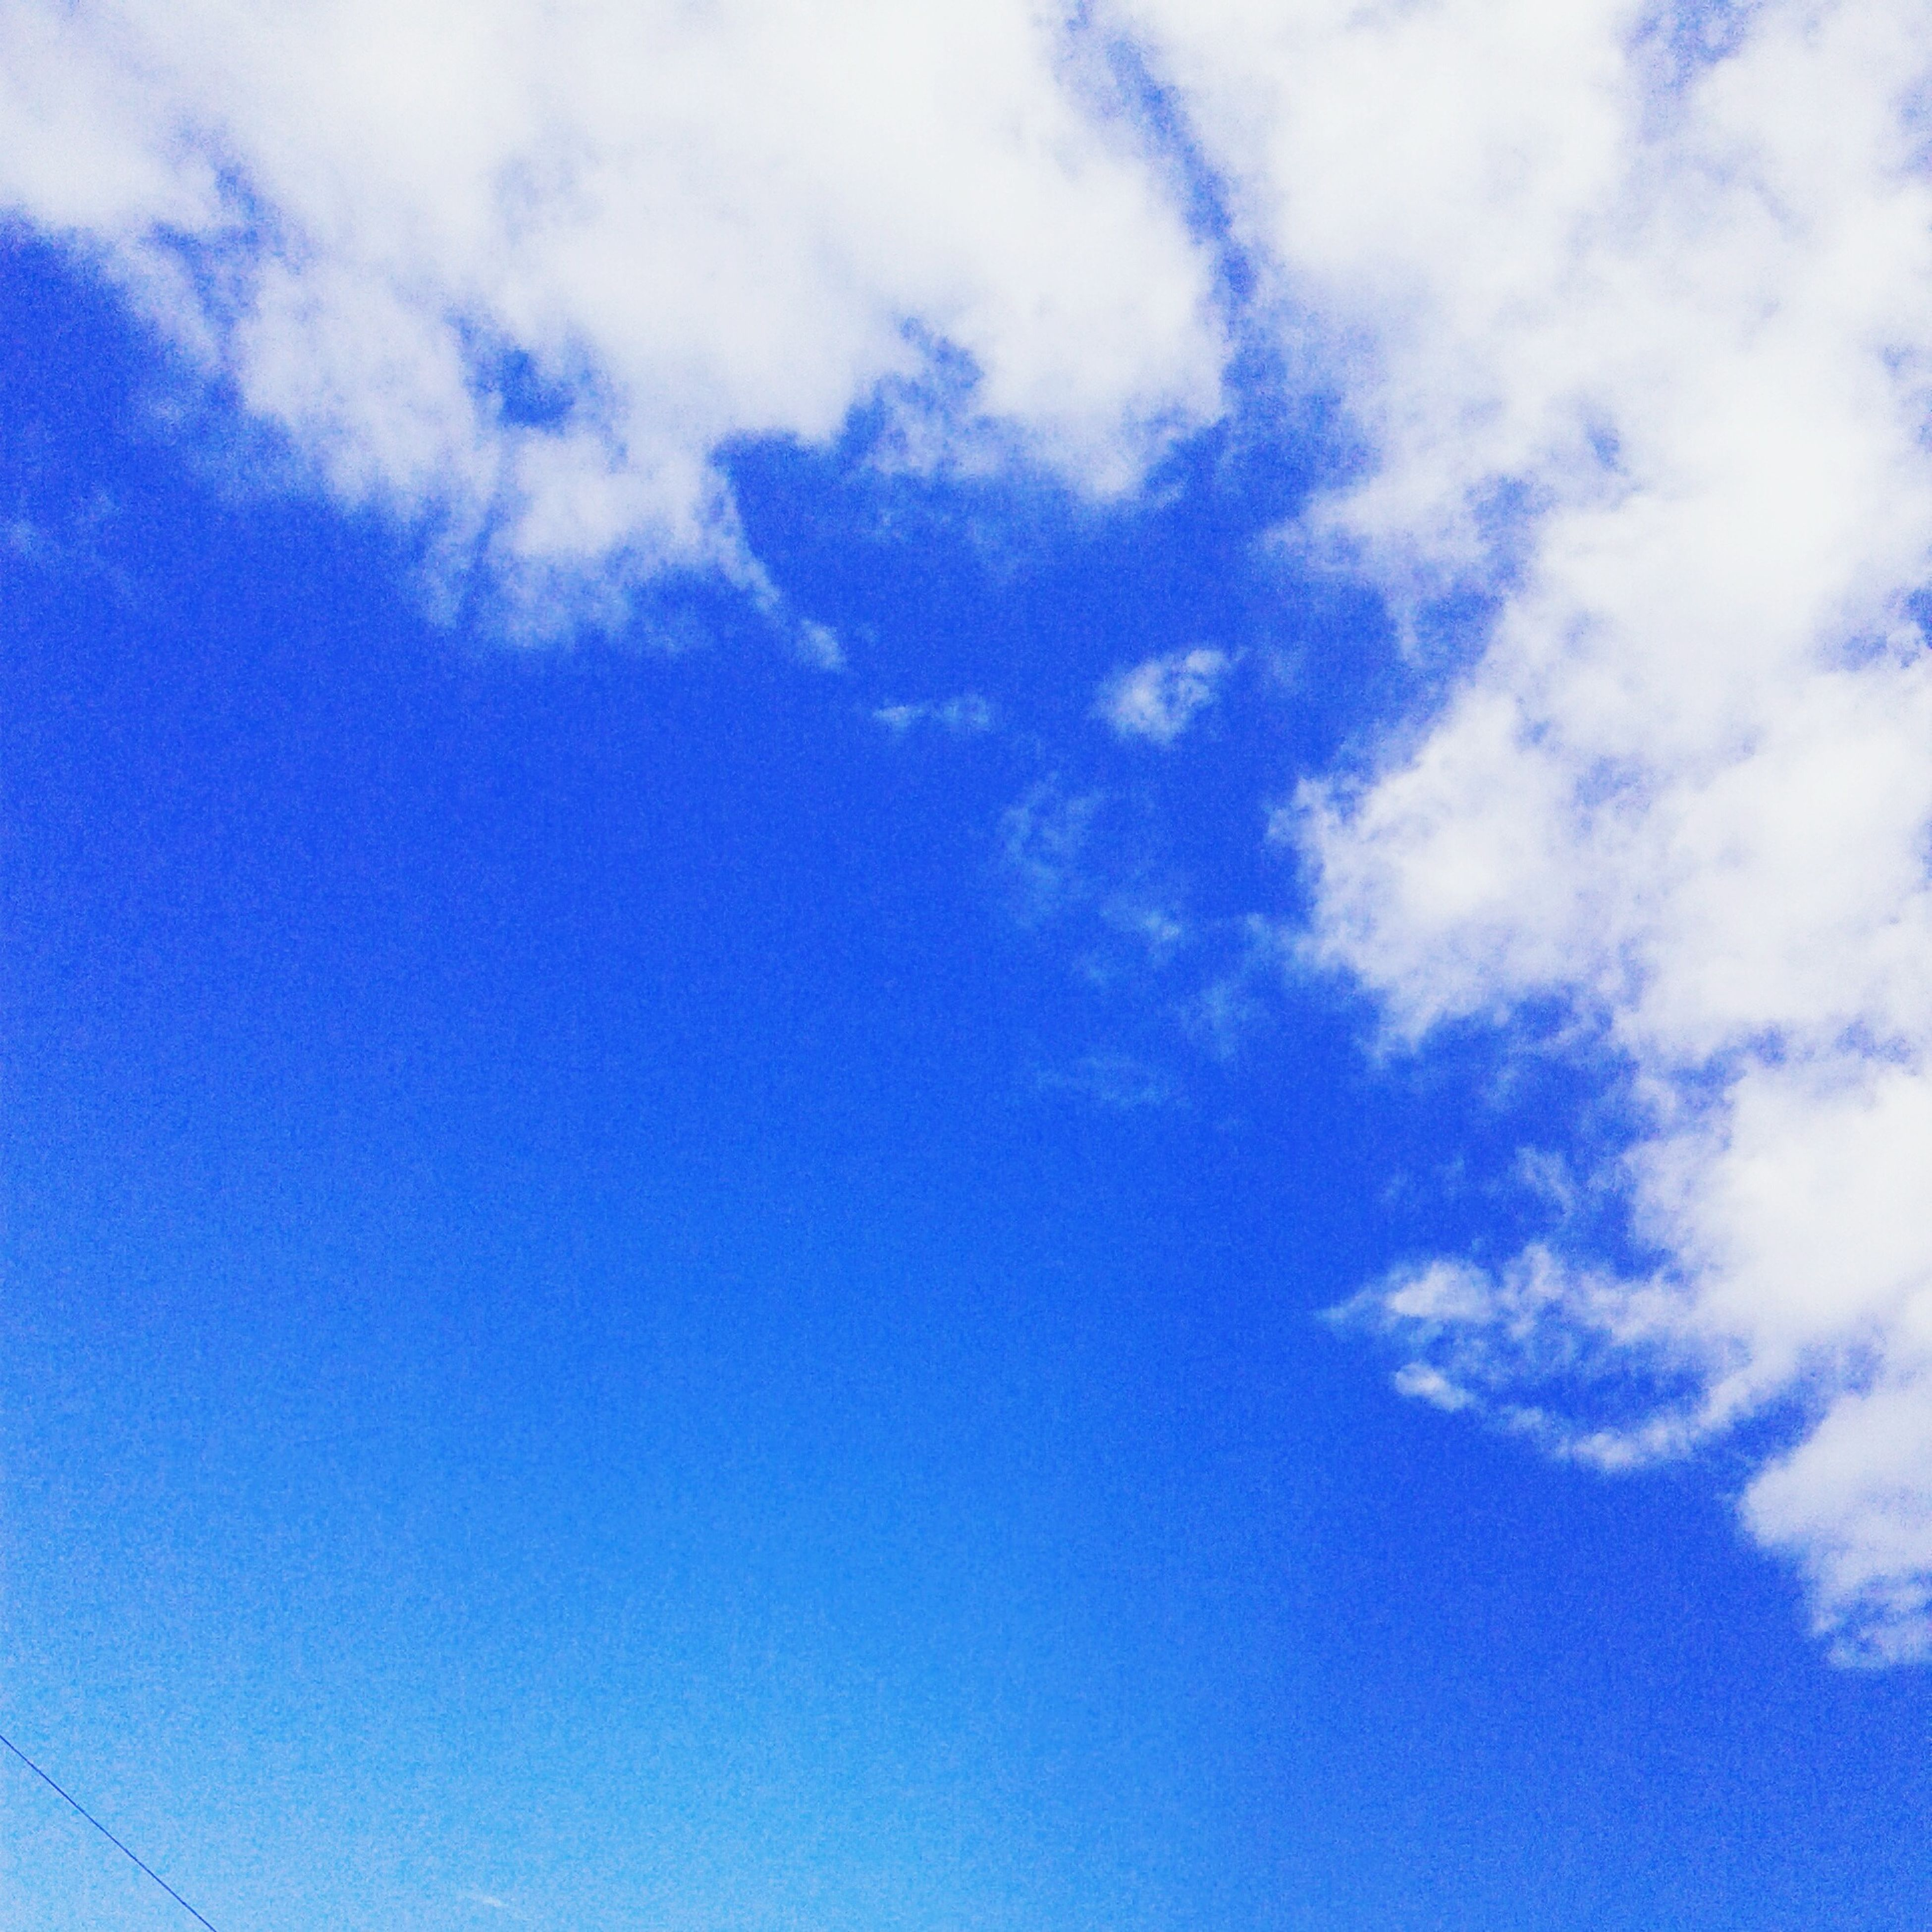 blue, low angle view, sky, beauty in nature, sky only, backgrounds, tranquility, cloud - sky, nature, scenics, white color, full frame, tranquil scene, cloud, day, outdoors, no people, cloudy, idyllic, white